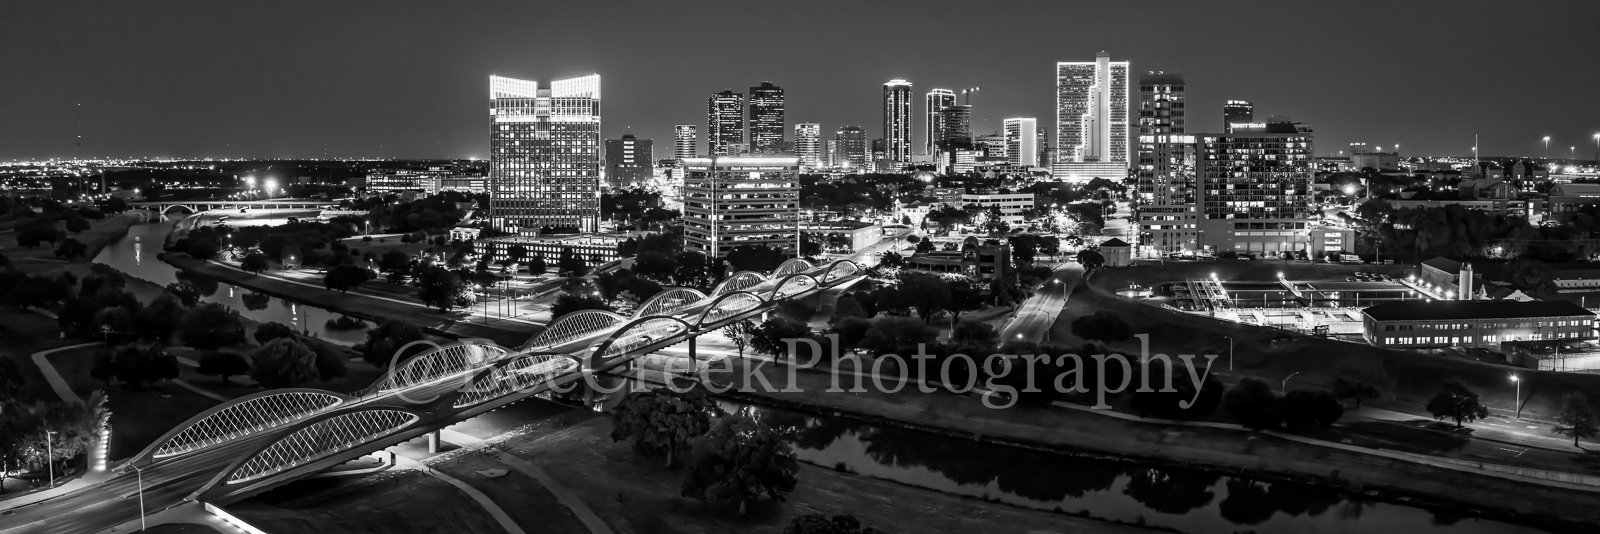 Fort Worth Skyline Night BW Pano 2 - We capture this aerial black and white panorama image at night of the Fort Worth skyline...